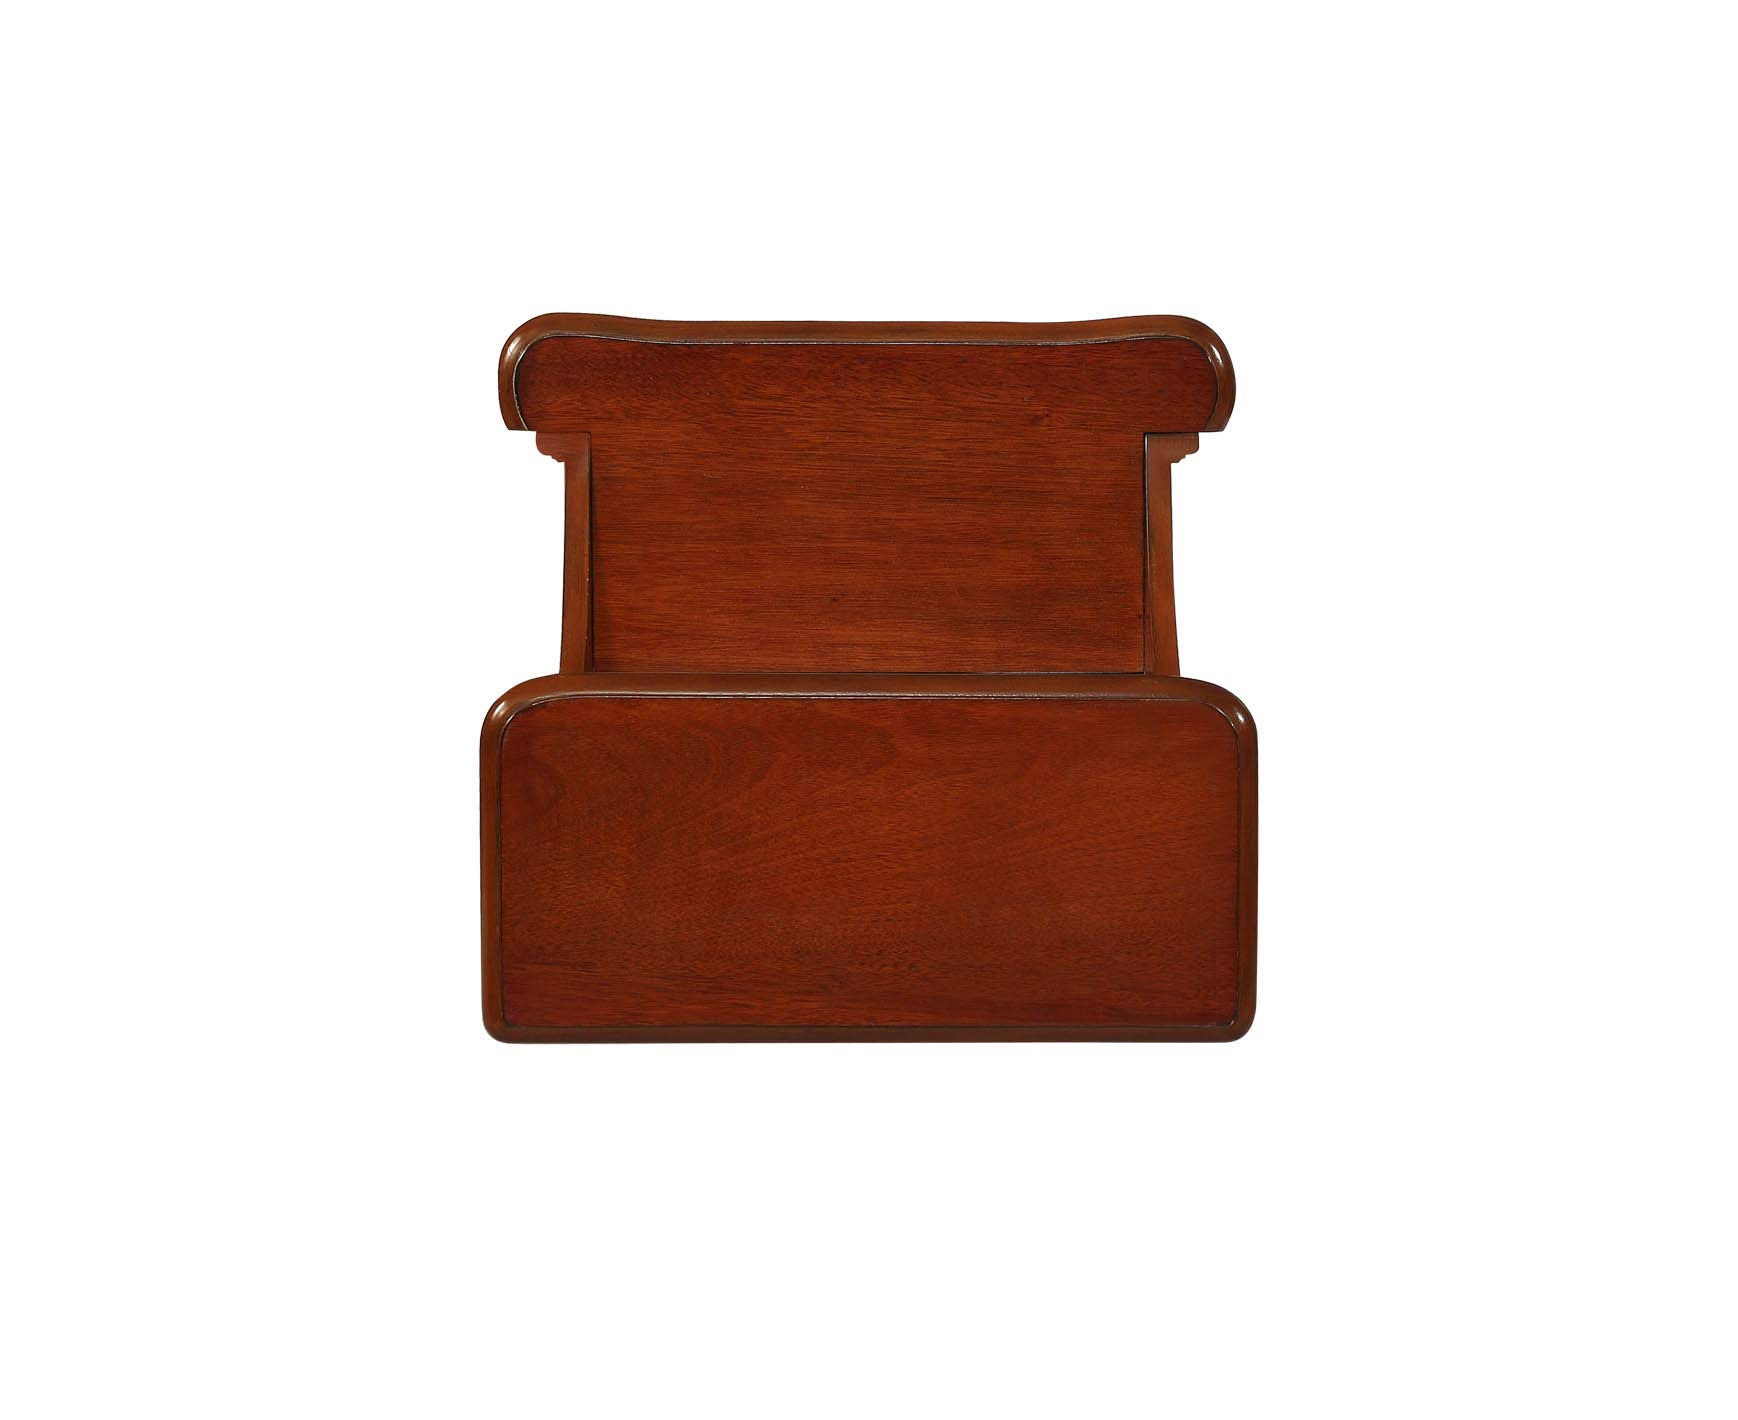 Powell Woodbury Mahogany Bed Step with Storage